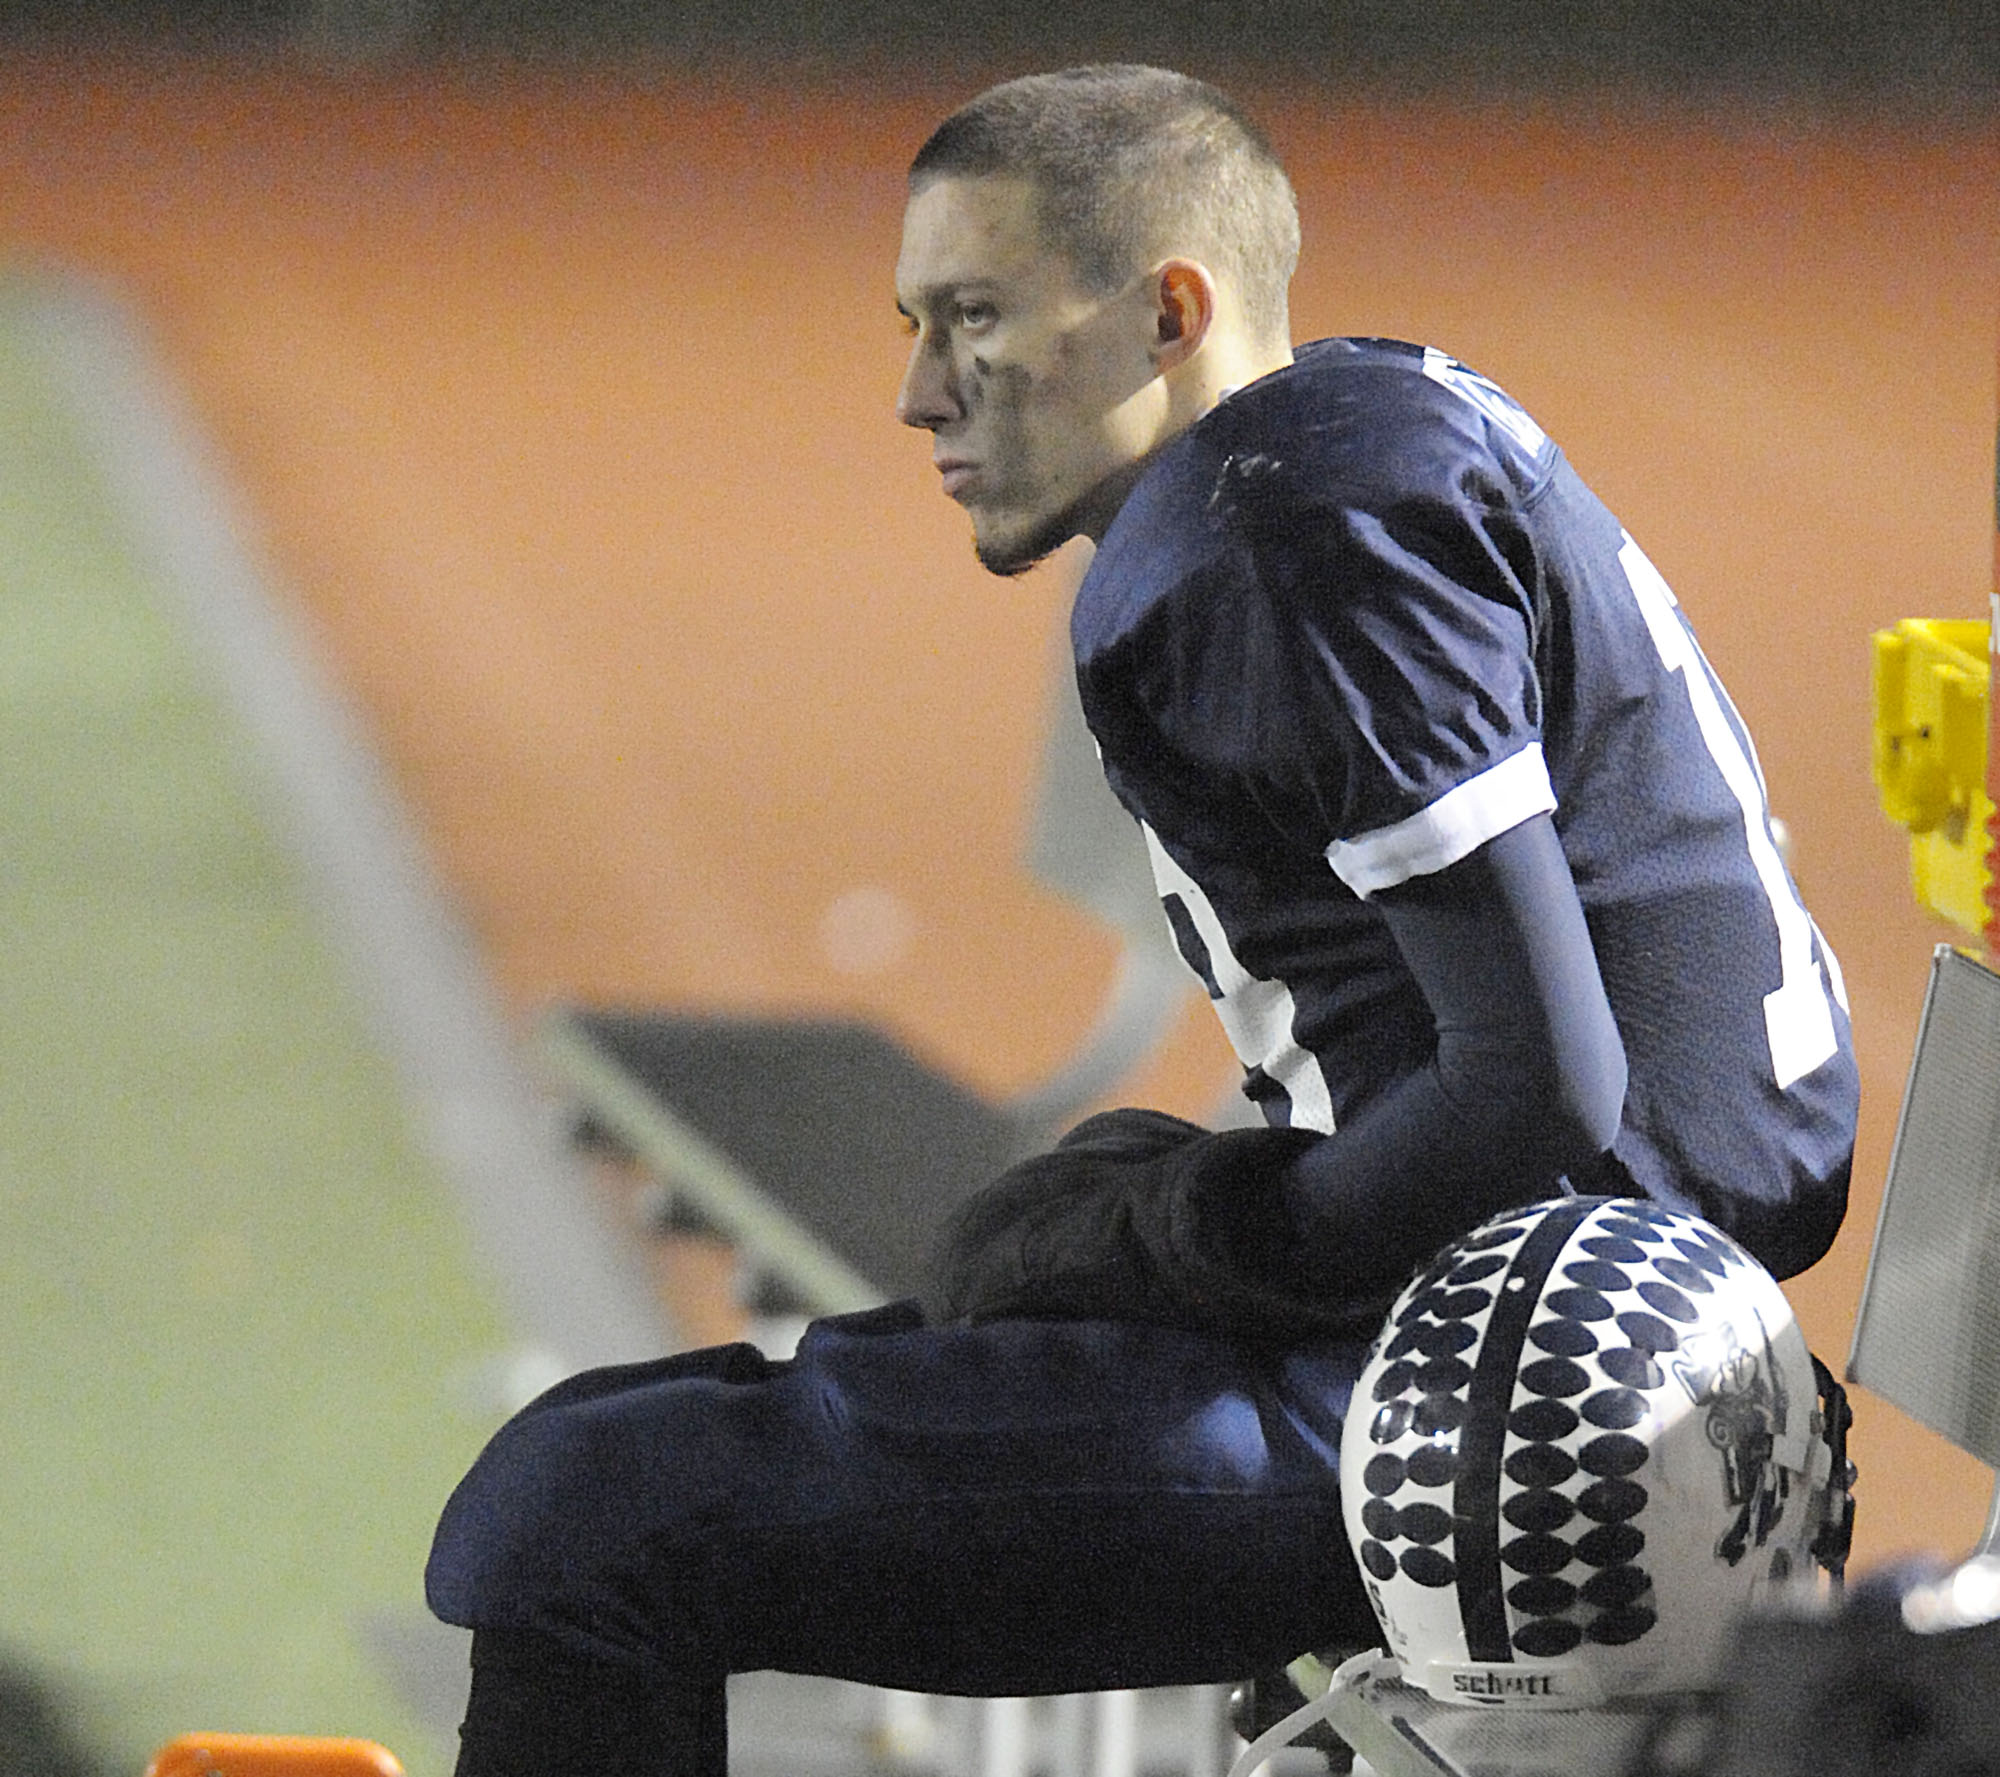 Stearns quarterback Jared McGreevy watches the final minutes of Saturday's state Class C football championship game from the bench after suffering a torn ligament injury in the first half against Yarmouth in Portland. The Yarmouth Clippers won 34-6.